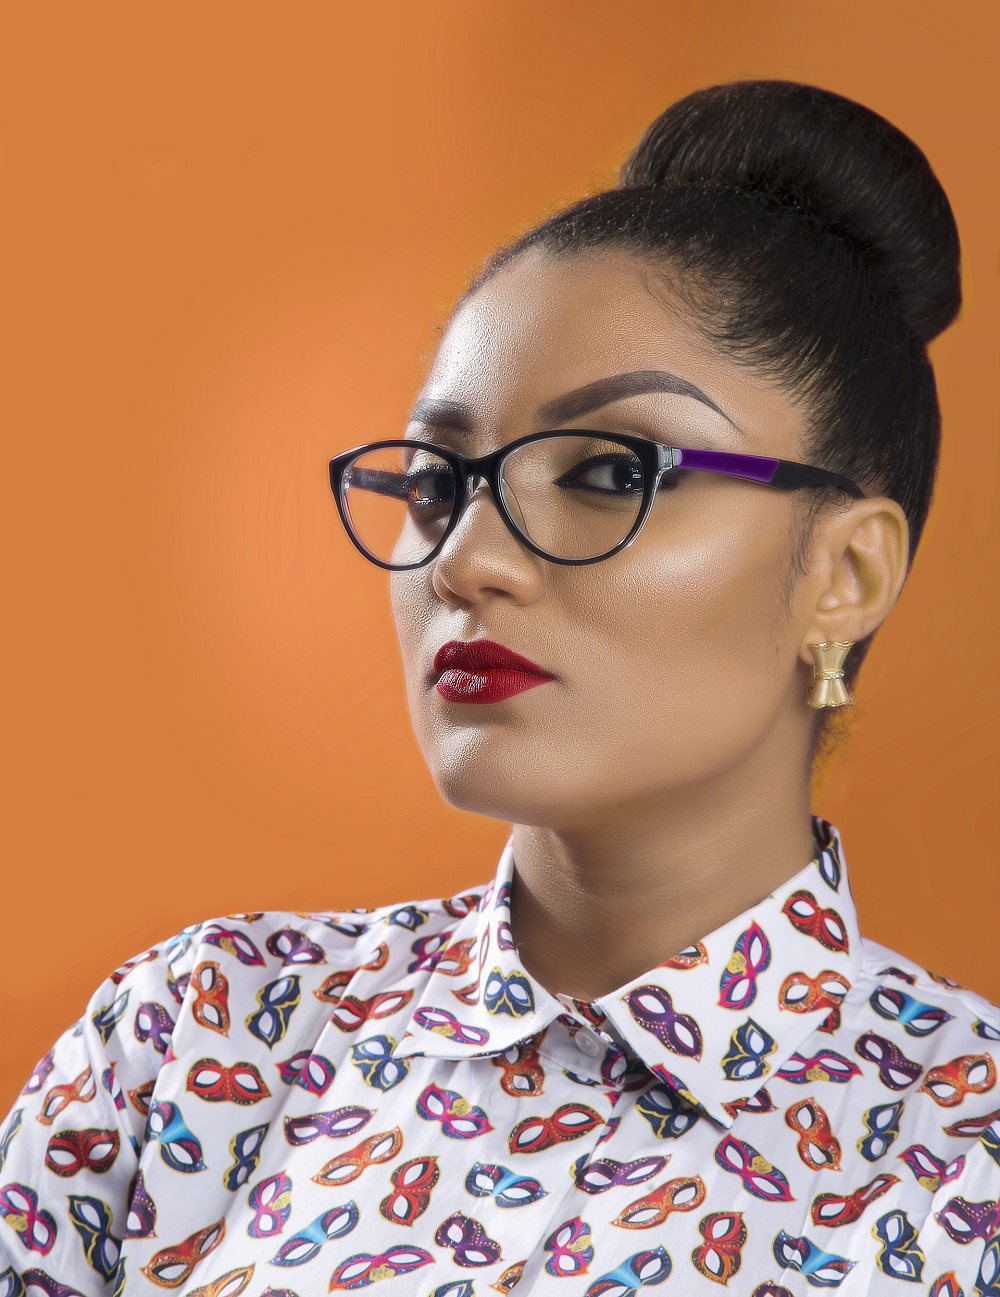 Gifty Stuns In New Photos For Upcoming Project